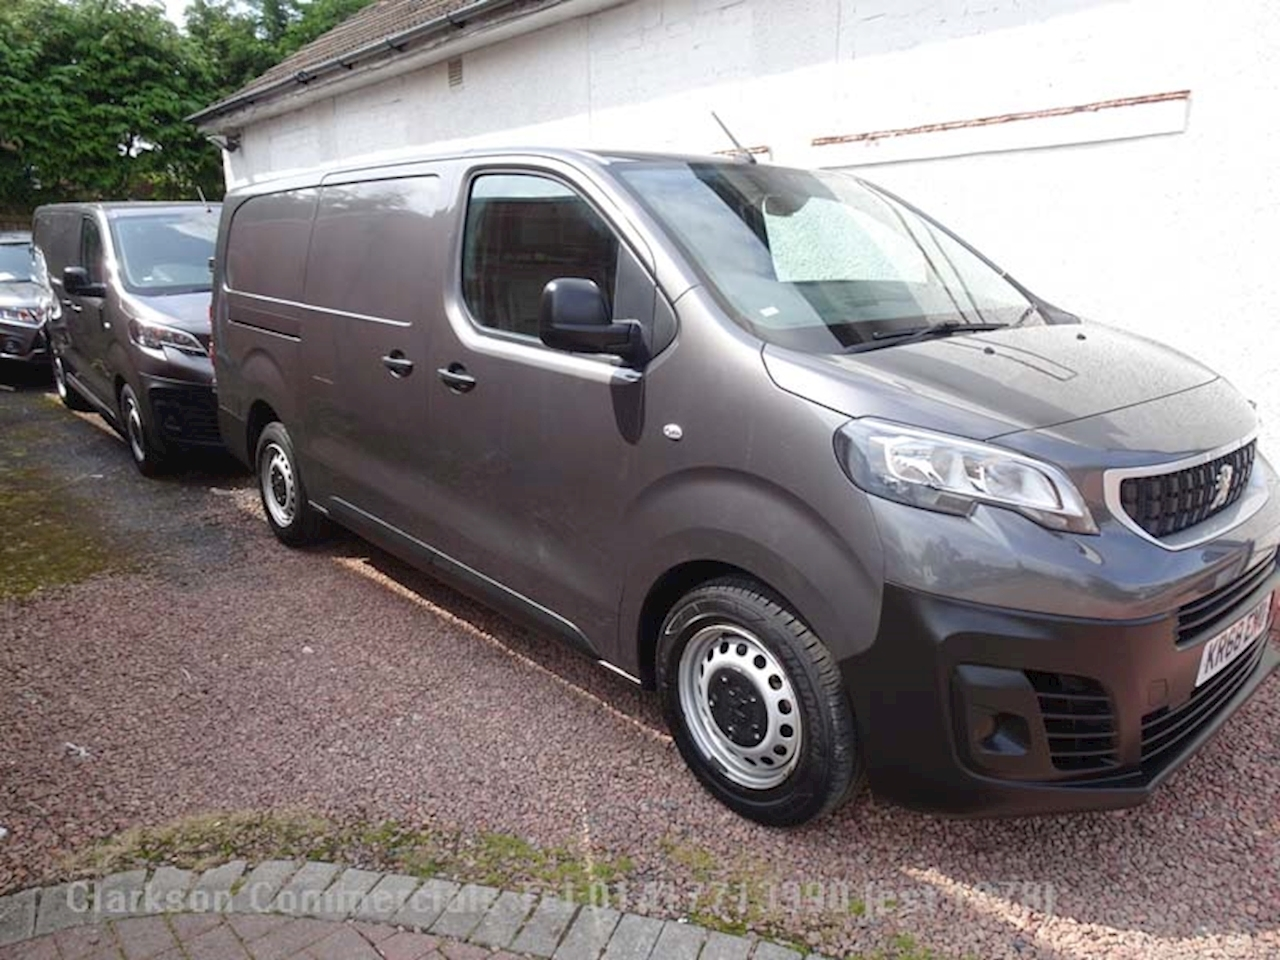 Peugeot Expert Blue Hdi Professional Long 2.0 120ps (choice) 2.0 Panel Van Manual Diesel